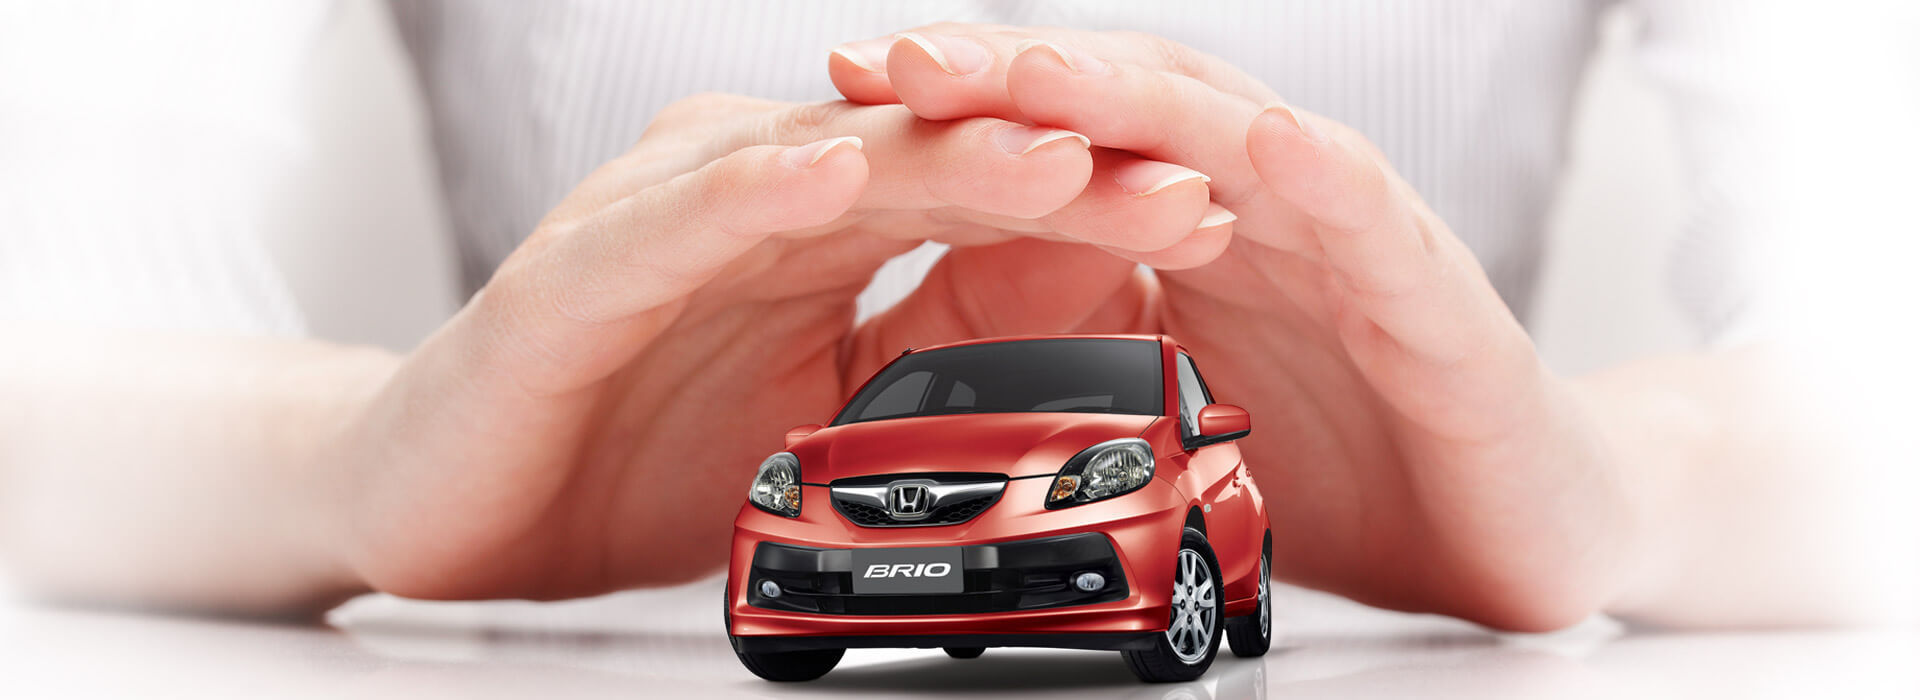 Car Safety Features For Lower Auto Insurance